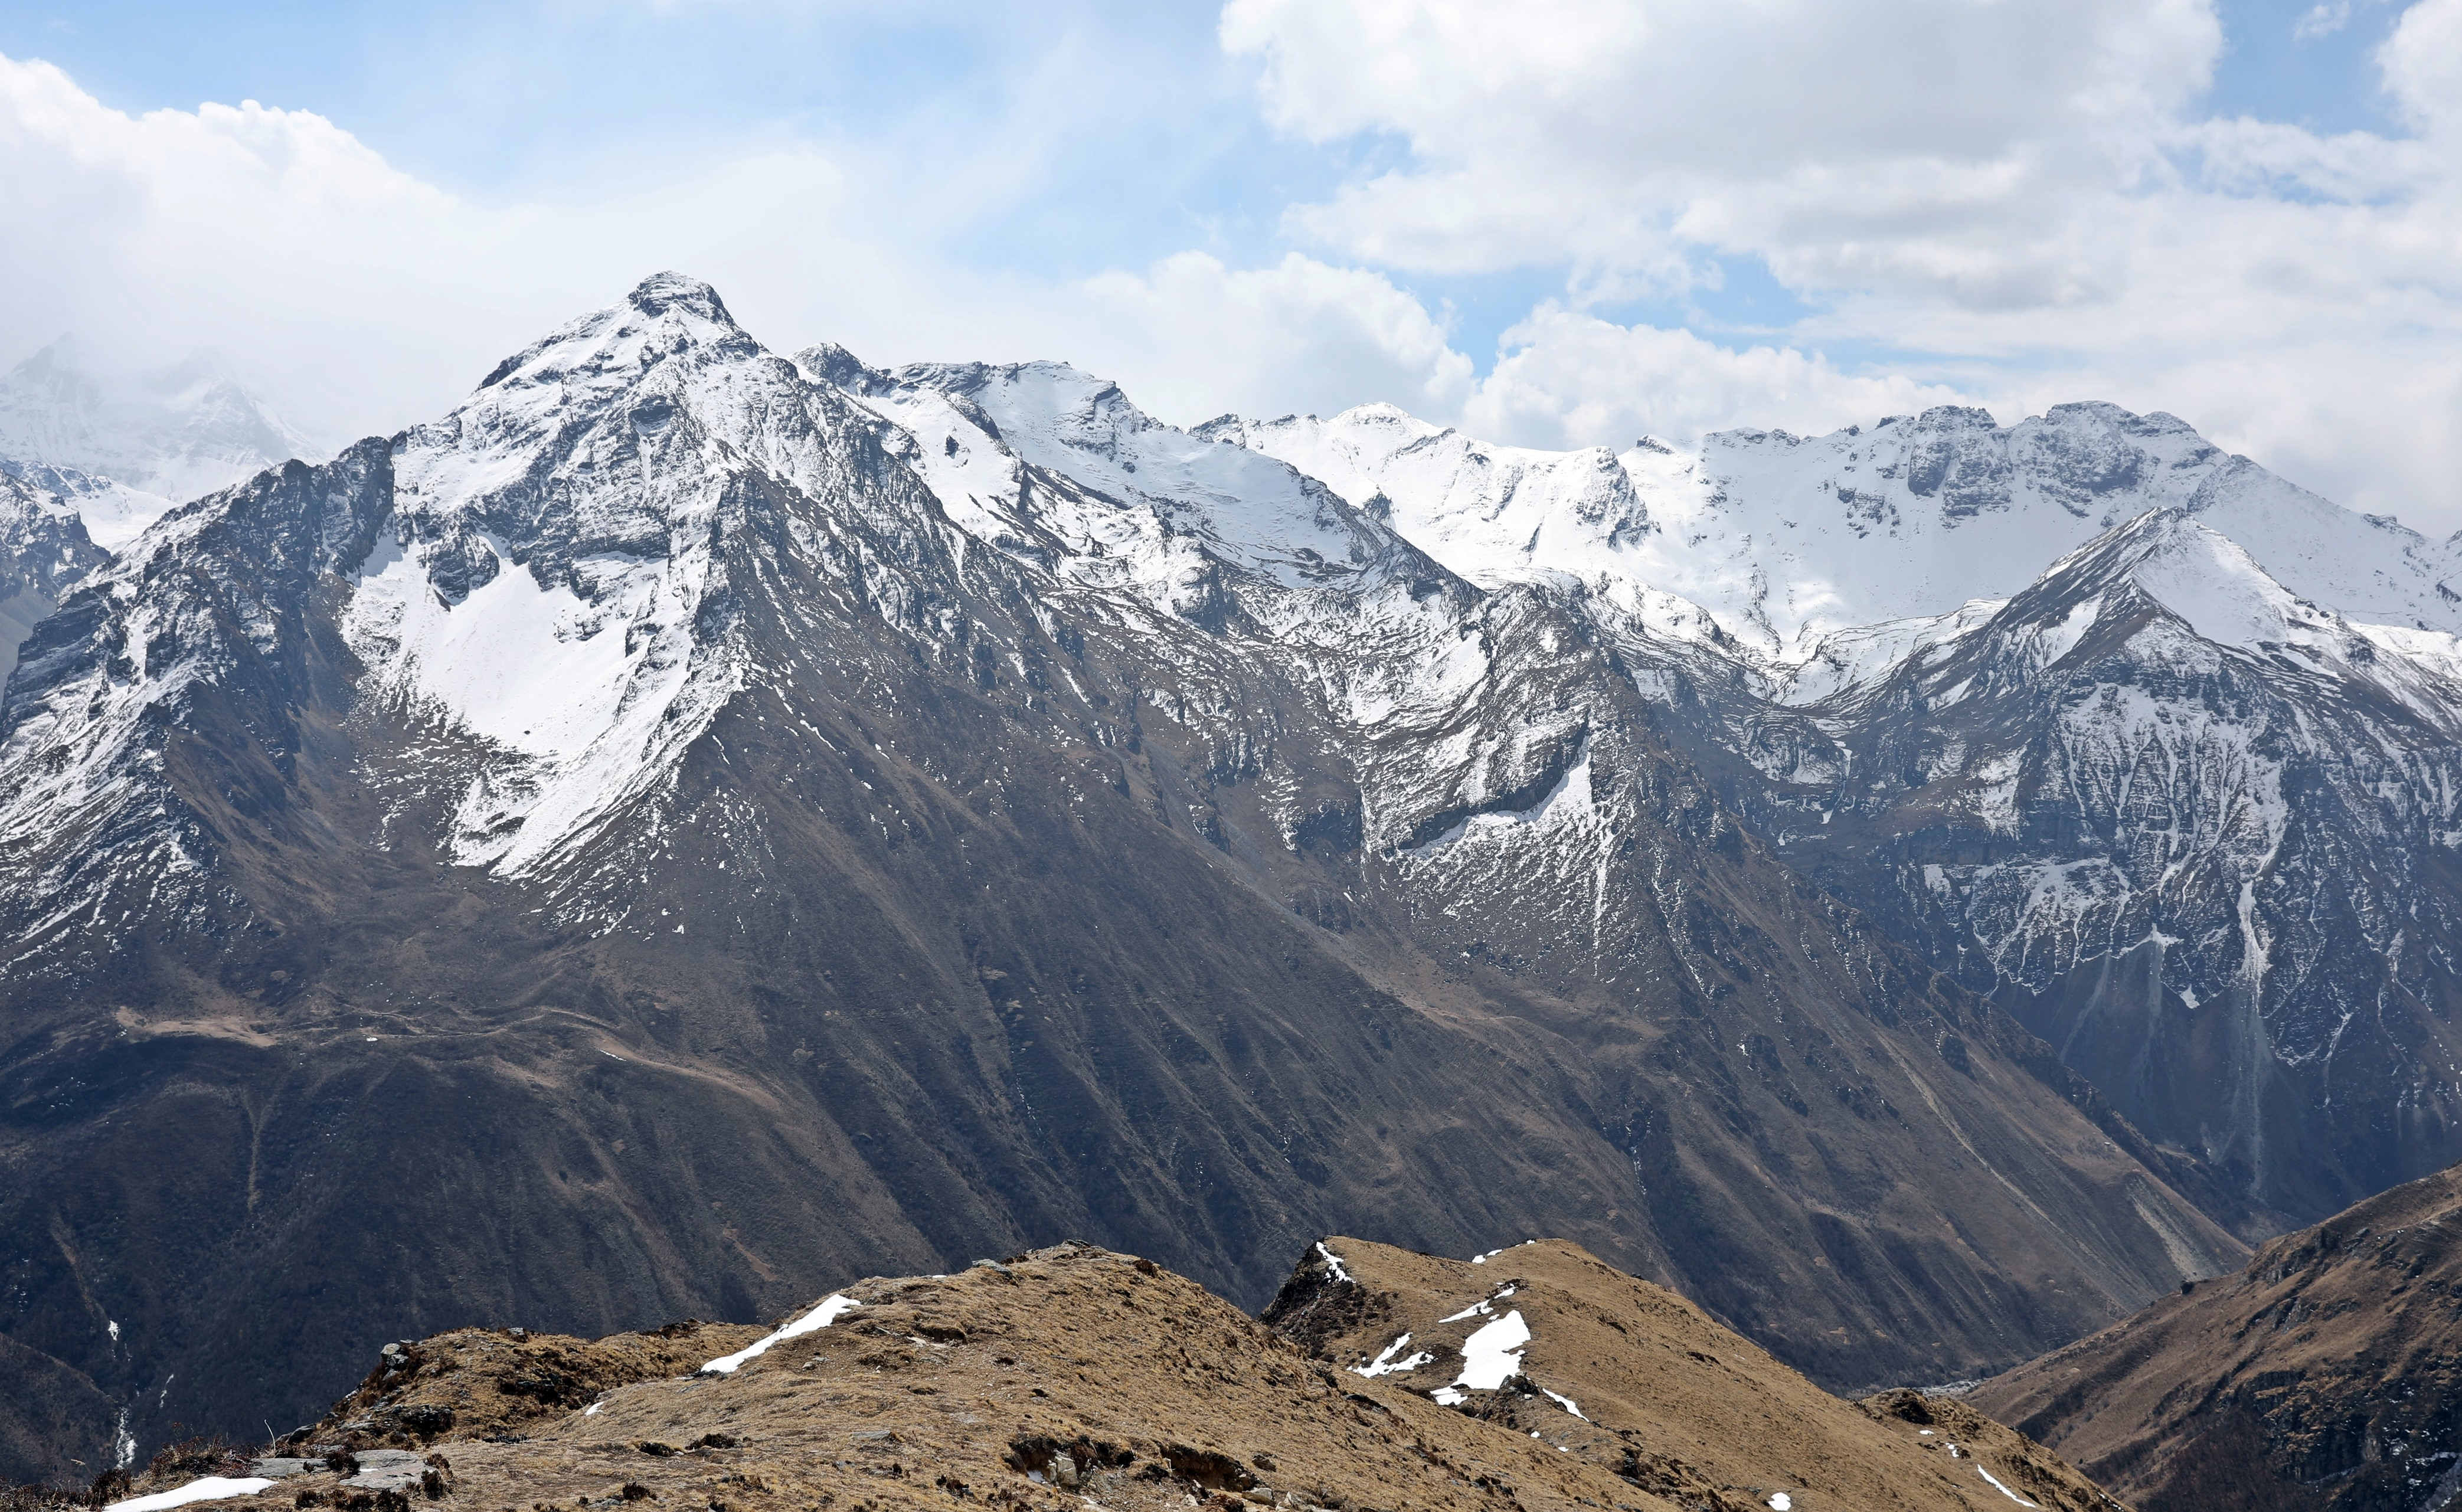 View from acclimatization trek